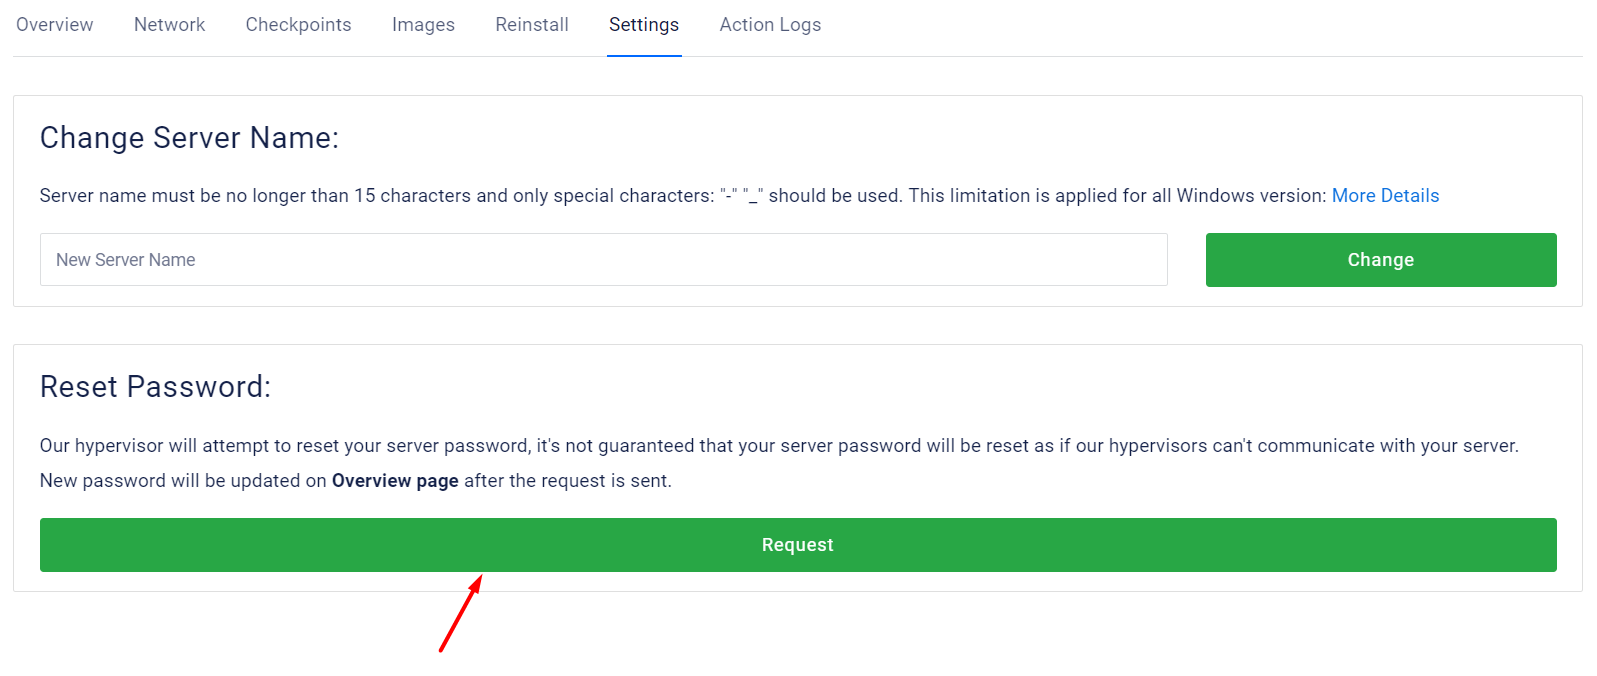 click-on-request-to-reset-password